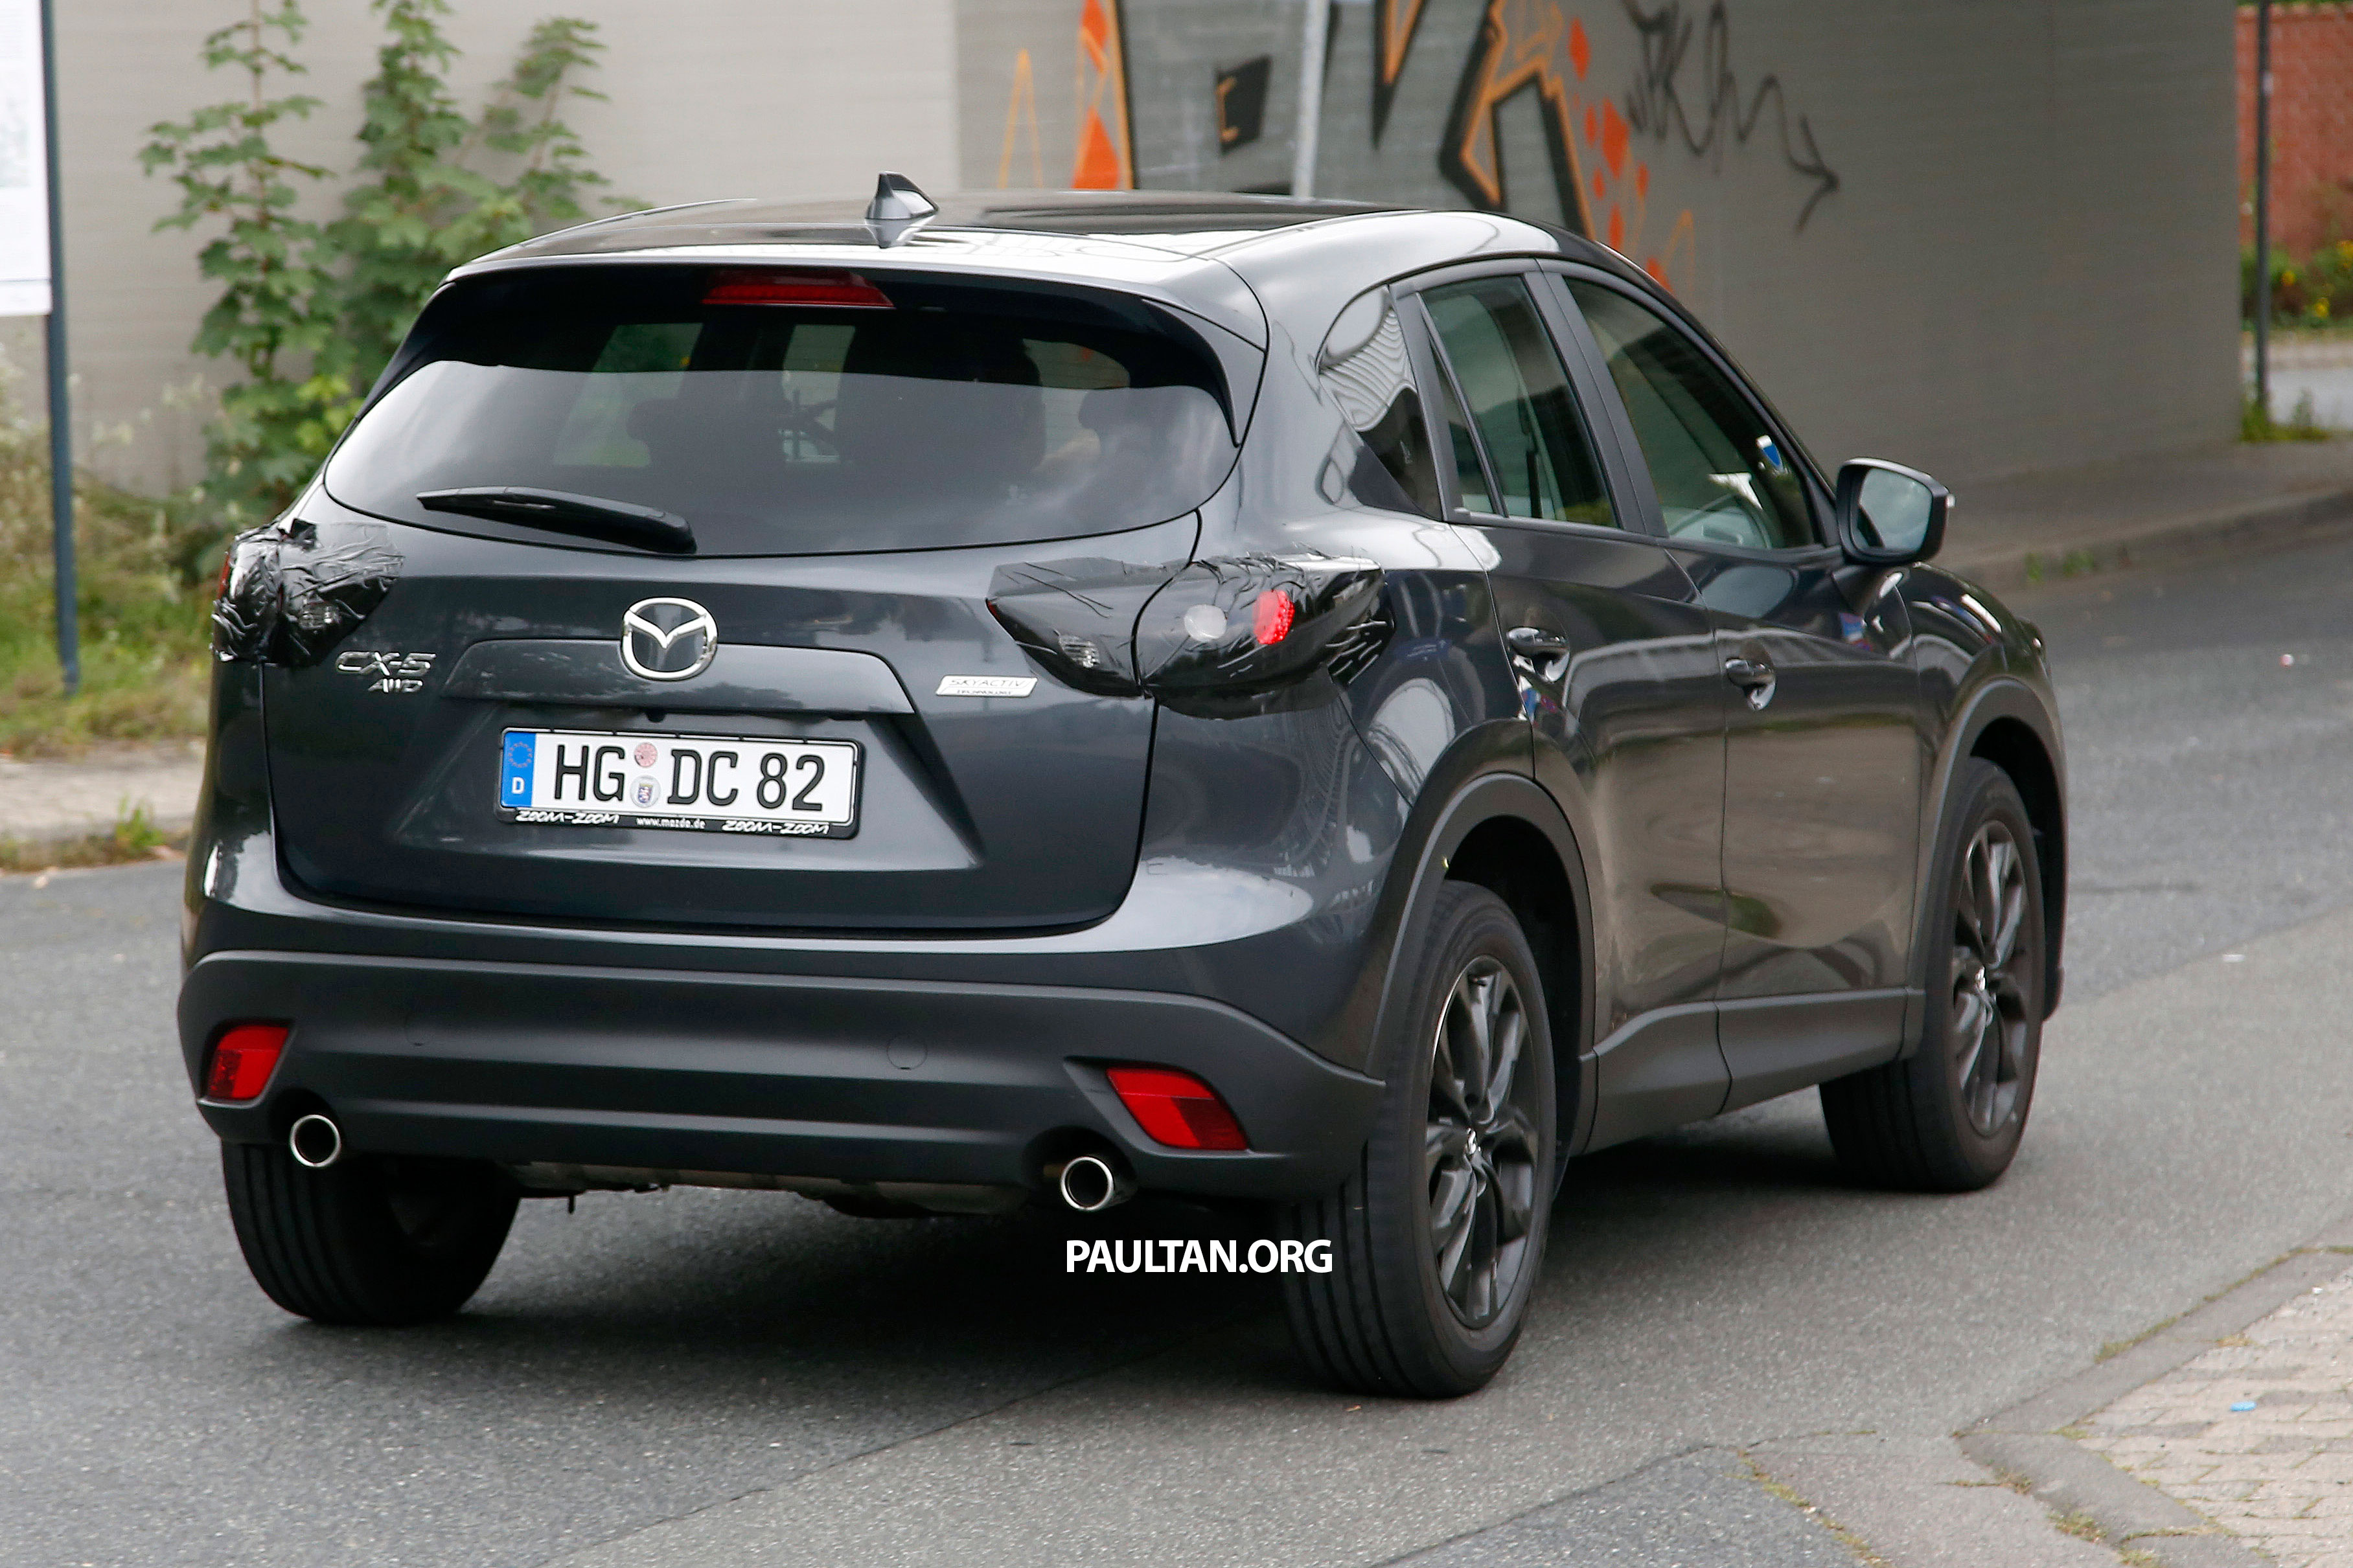 Spyshots Mazda Cx 5 Facelift New Grille And Lamps Image